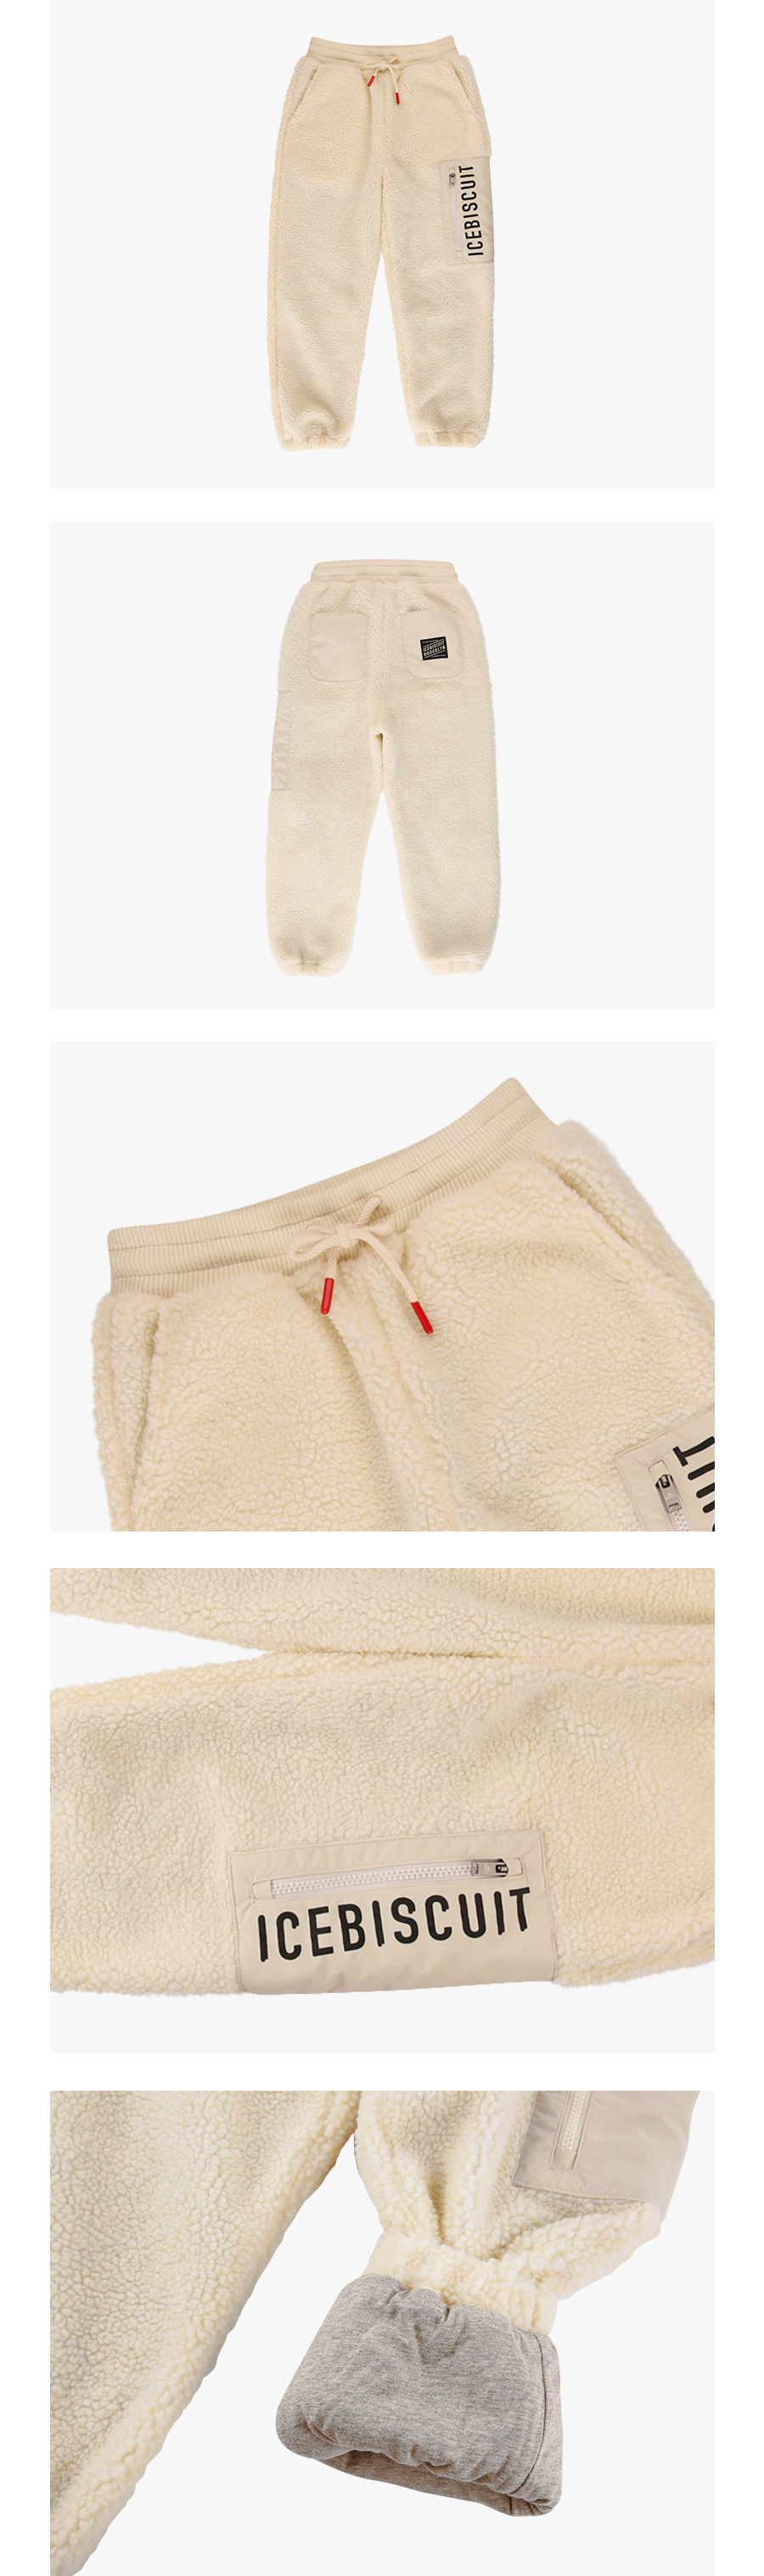 Icebiscuit sherpa fleece pants 상세 이미지